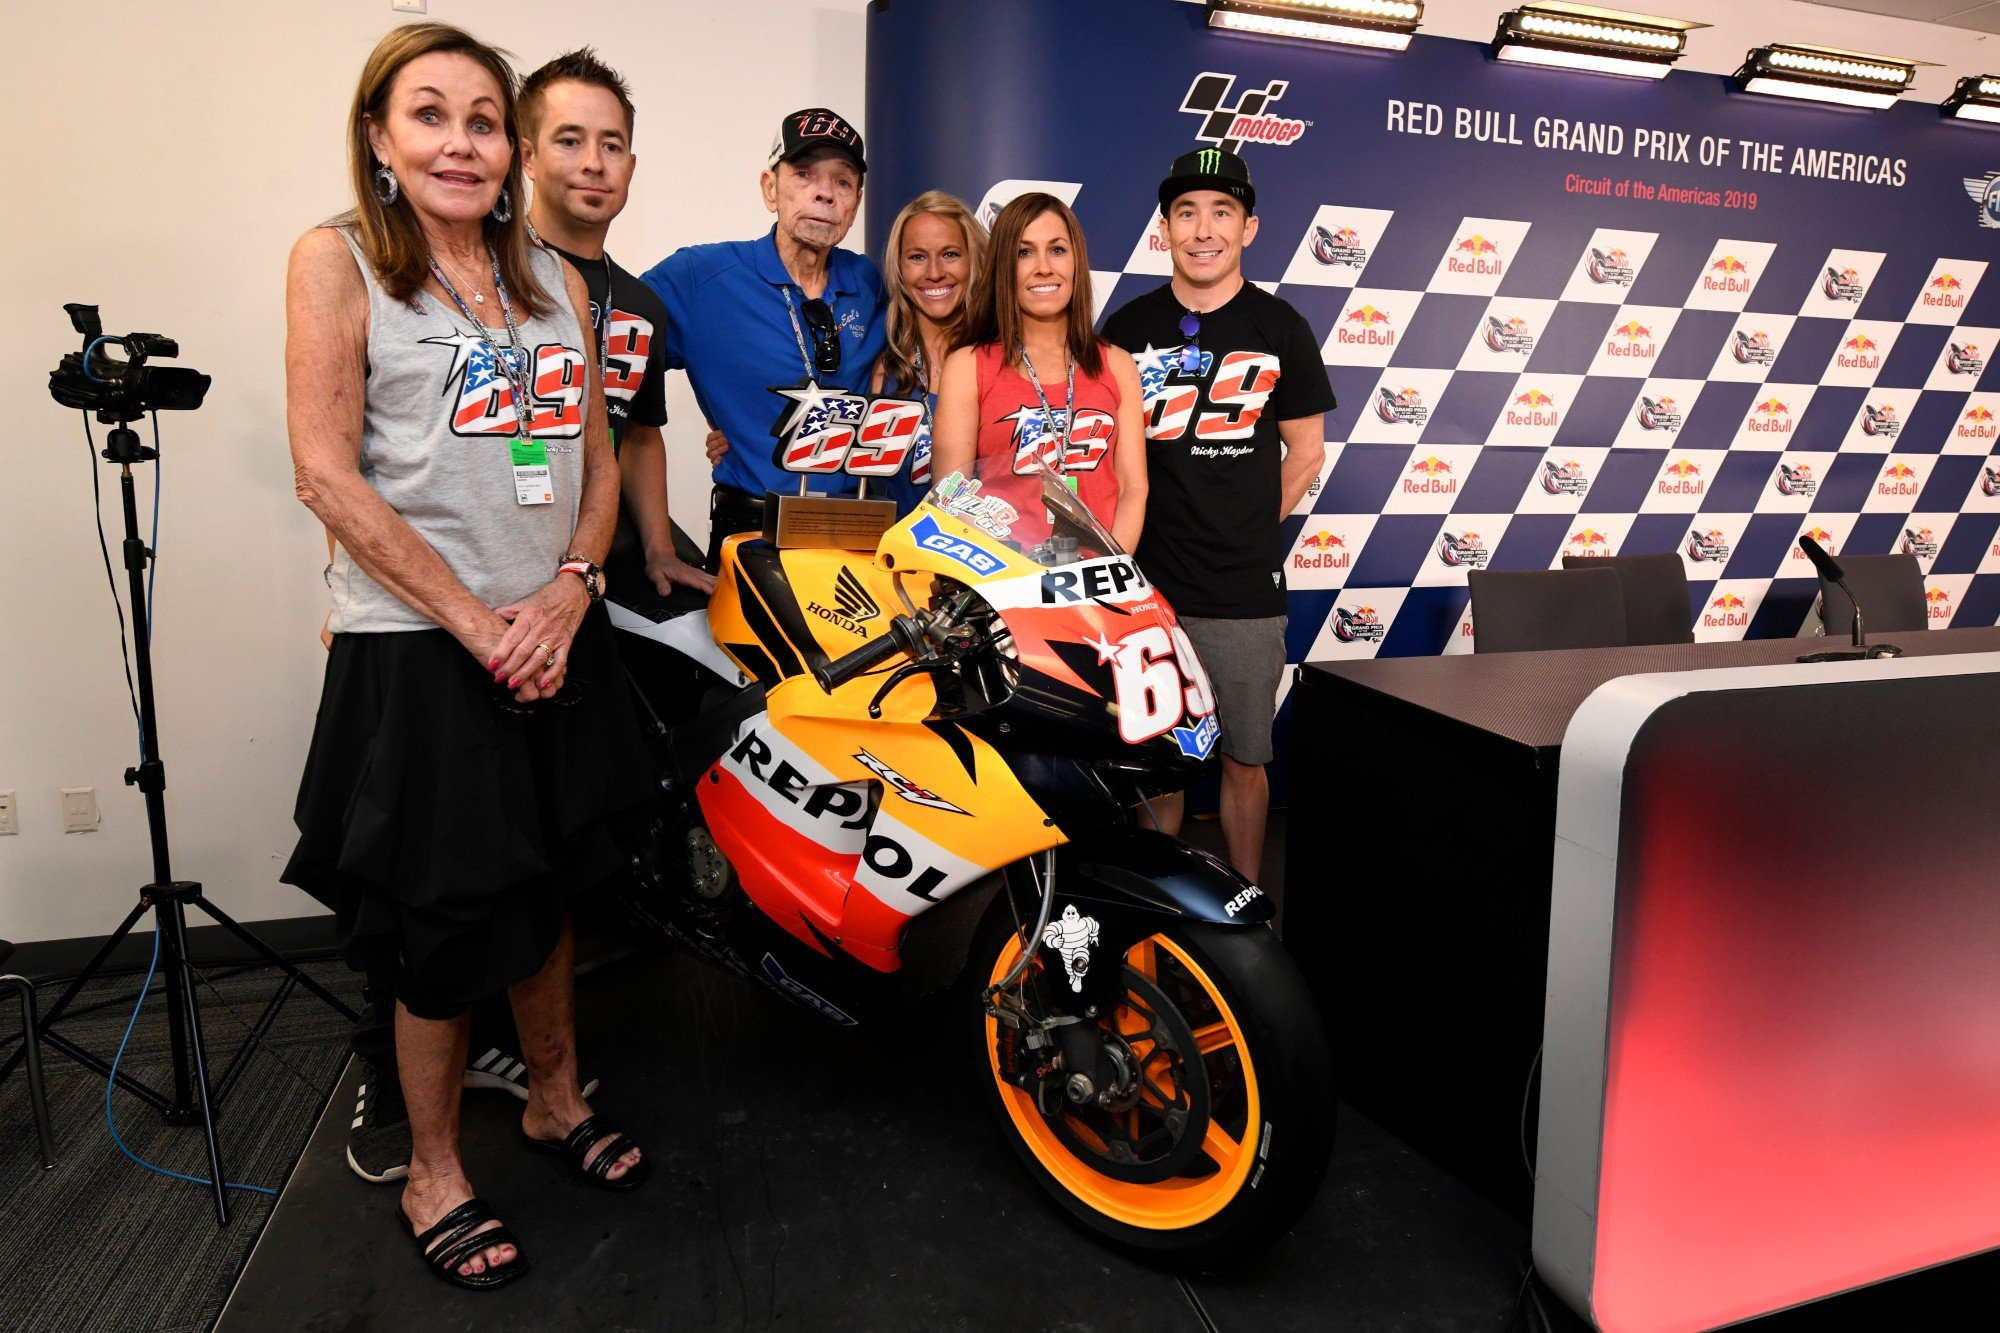 Motogp Nicky Hayden S 69 Retired From Motogp Racing At Circuit Of The Americas Roadracing World Magazine Motorcycle Riding Racing Tech News